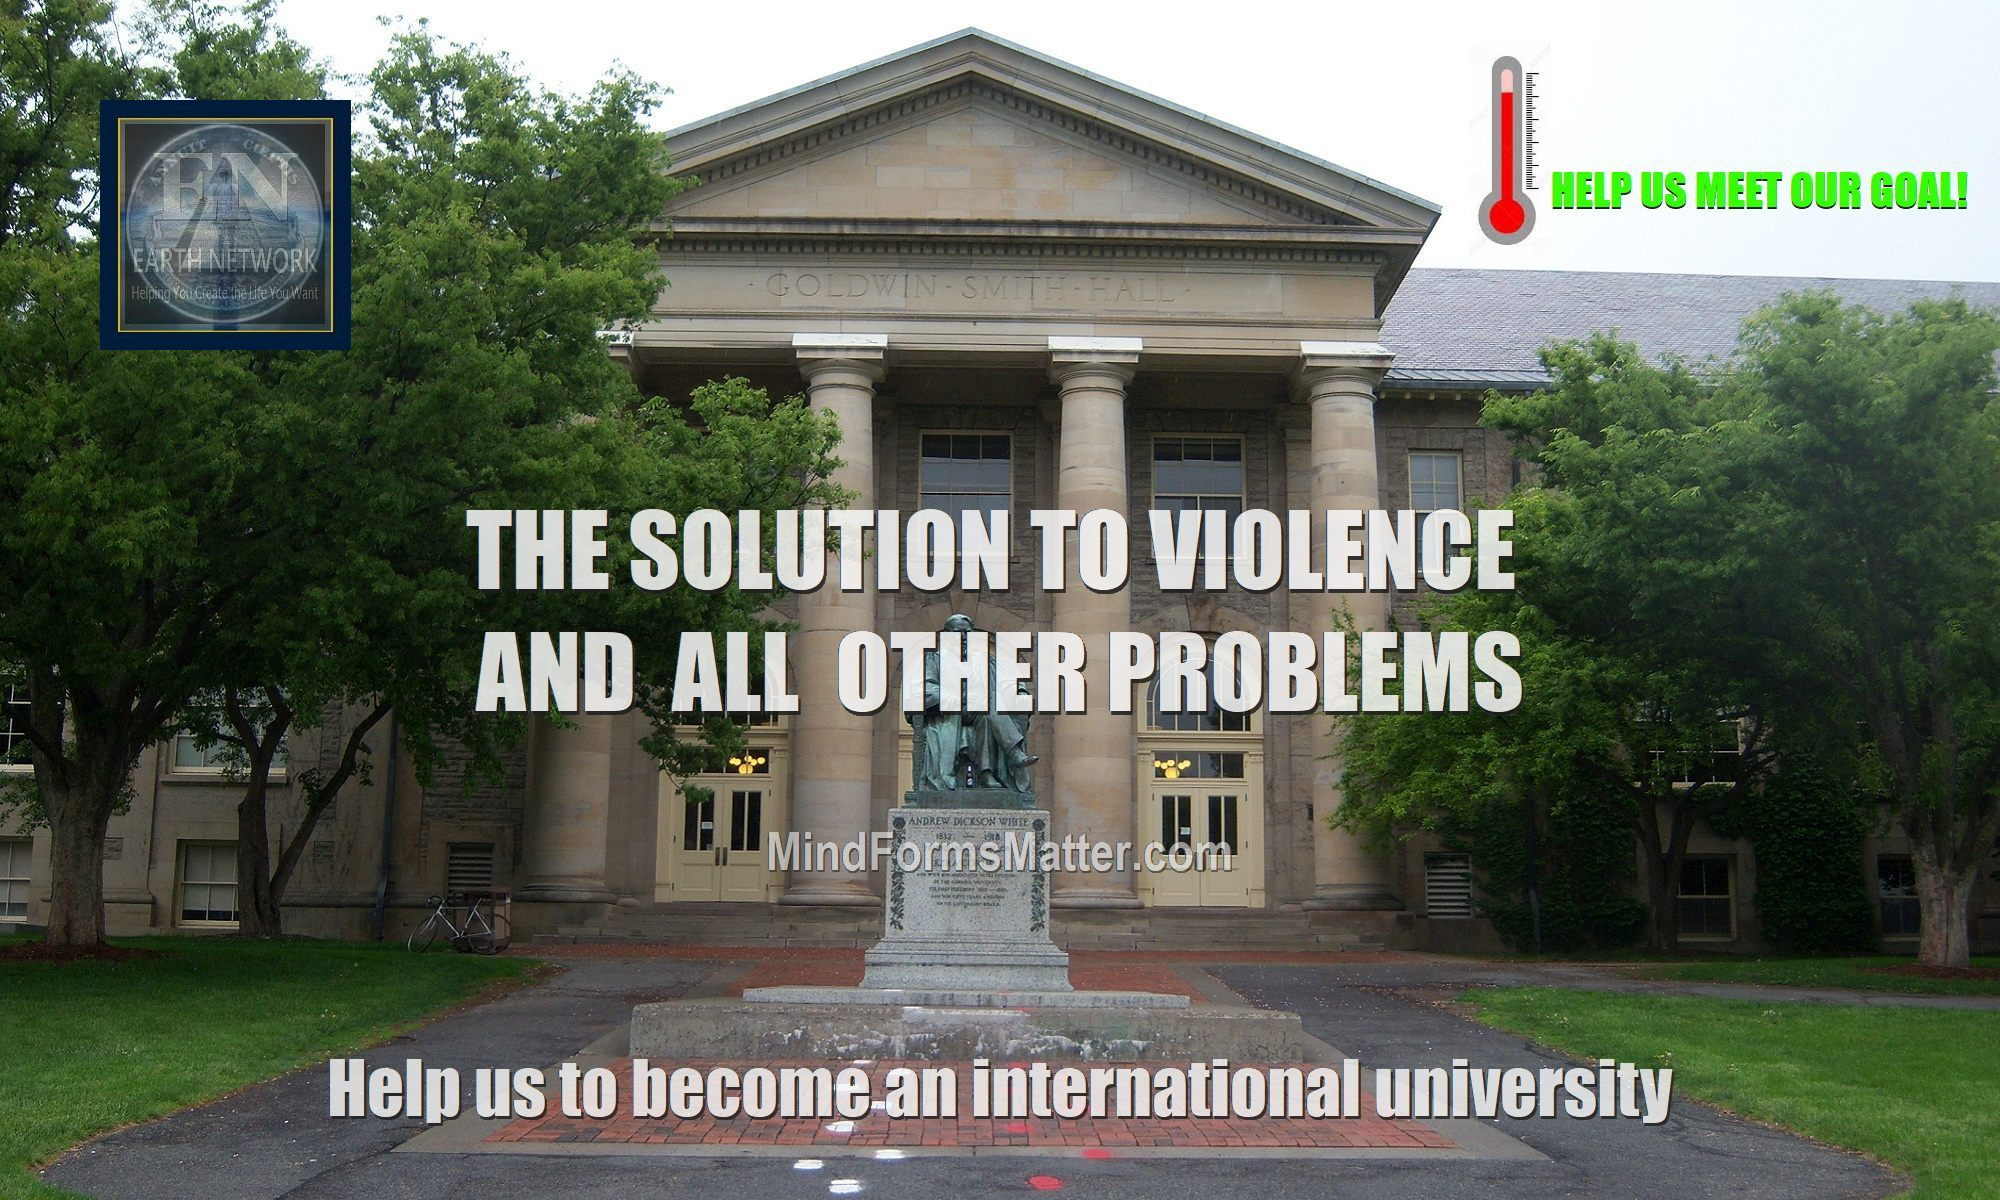 domestic-terrorism-shootings-gun-violence-what-is-driving-the-problem-the-real-cause-solution